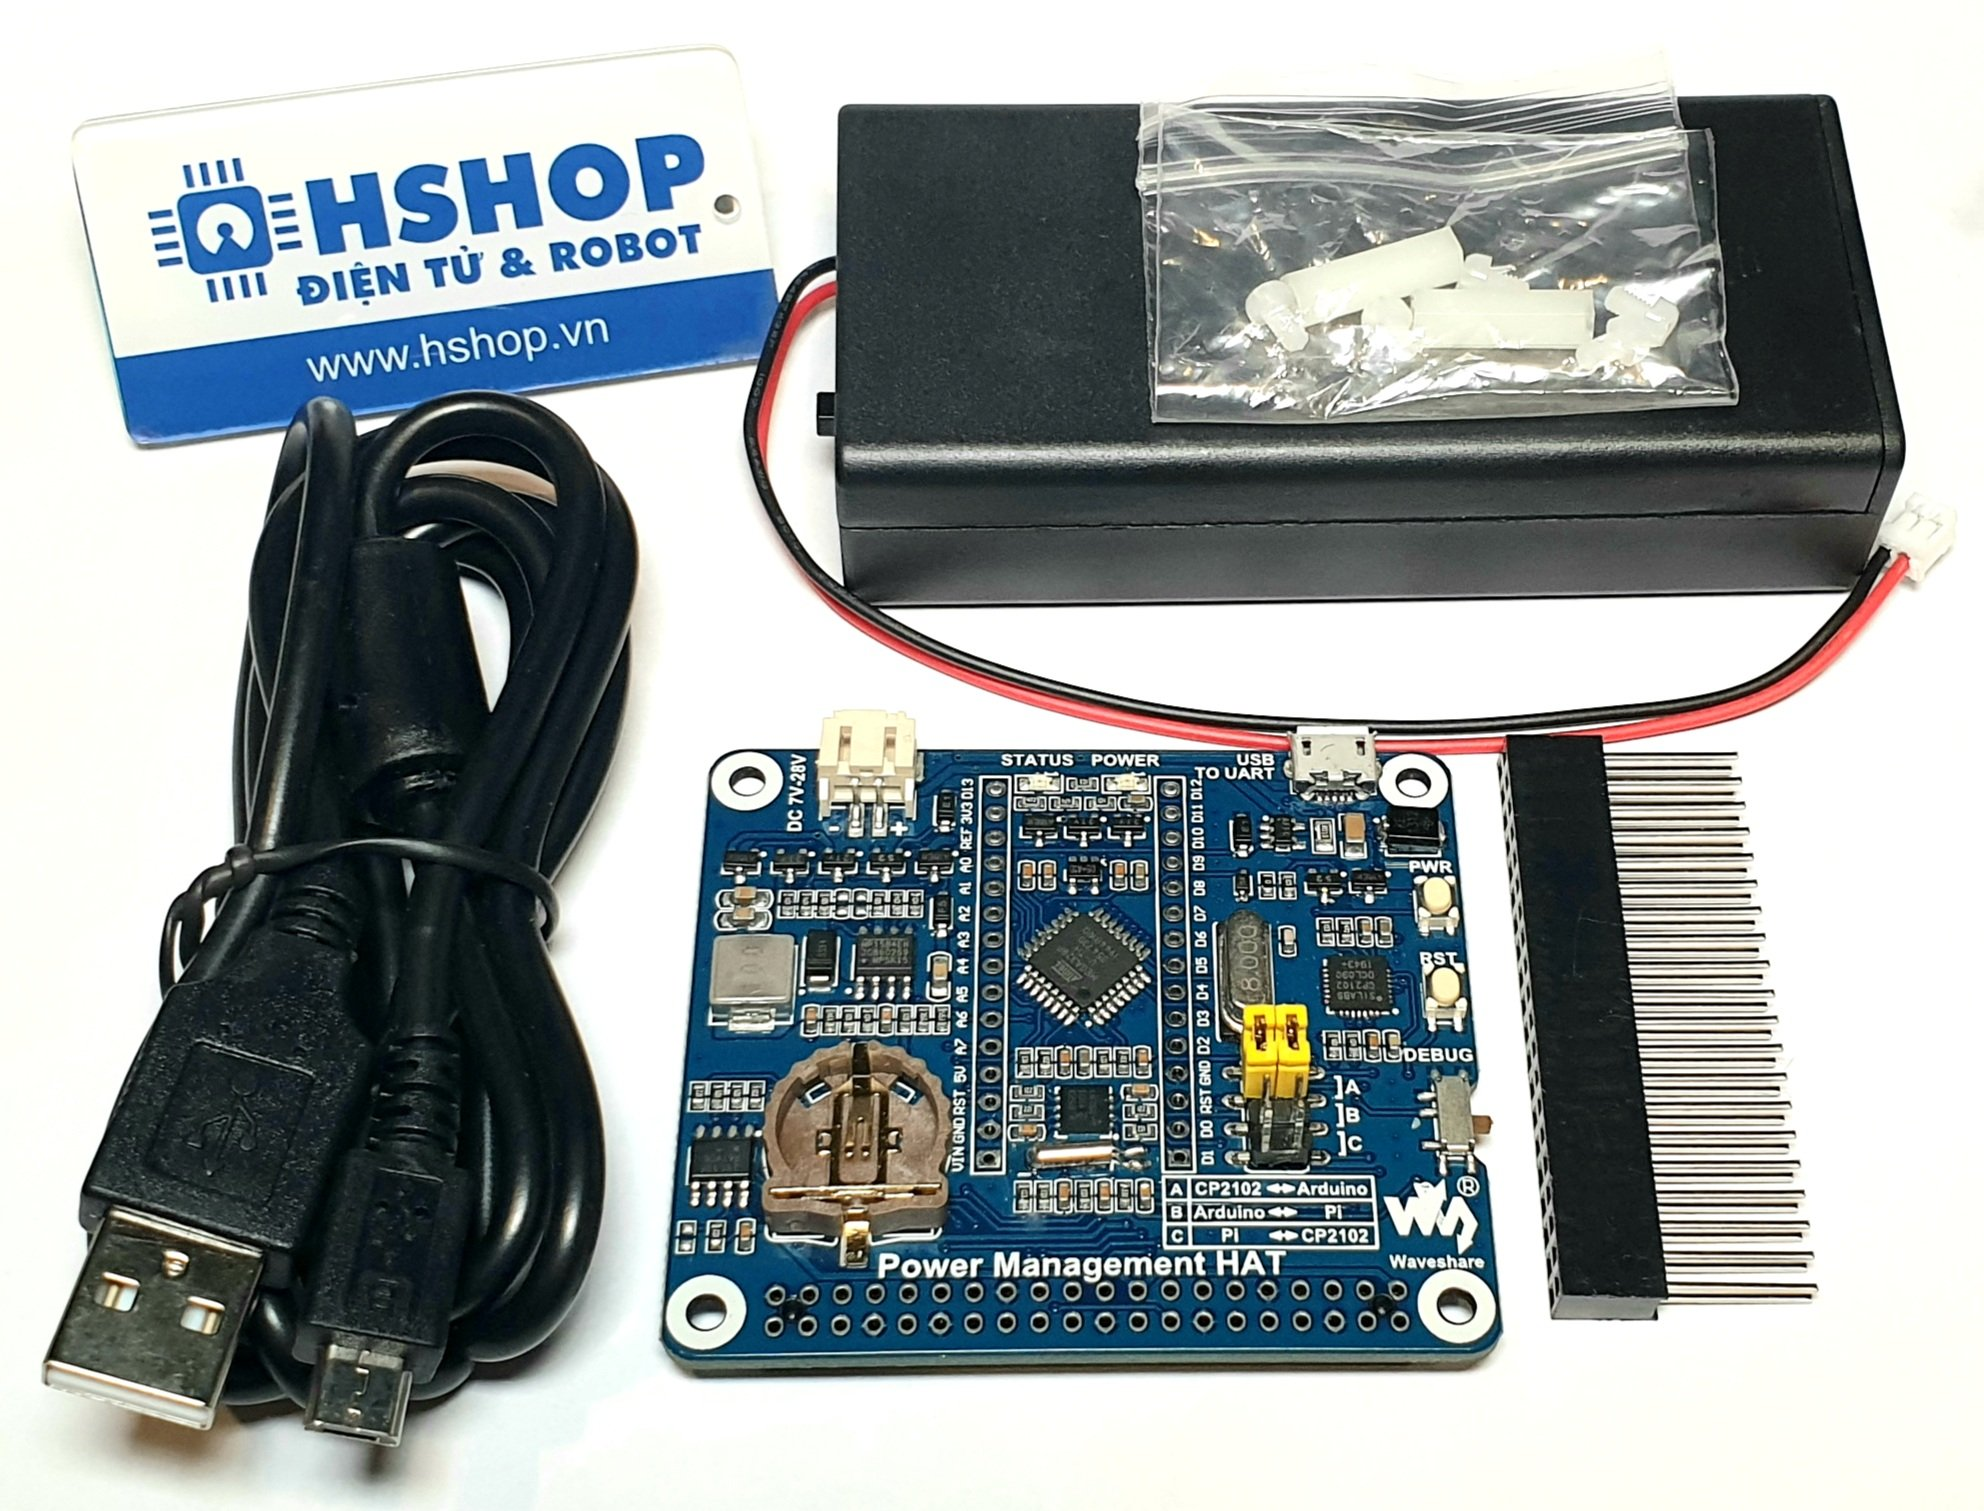 Mạch Waveshare Power Management HAT for Raspberry Pi, Embedded Arduino MCU and RTC